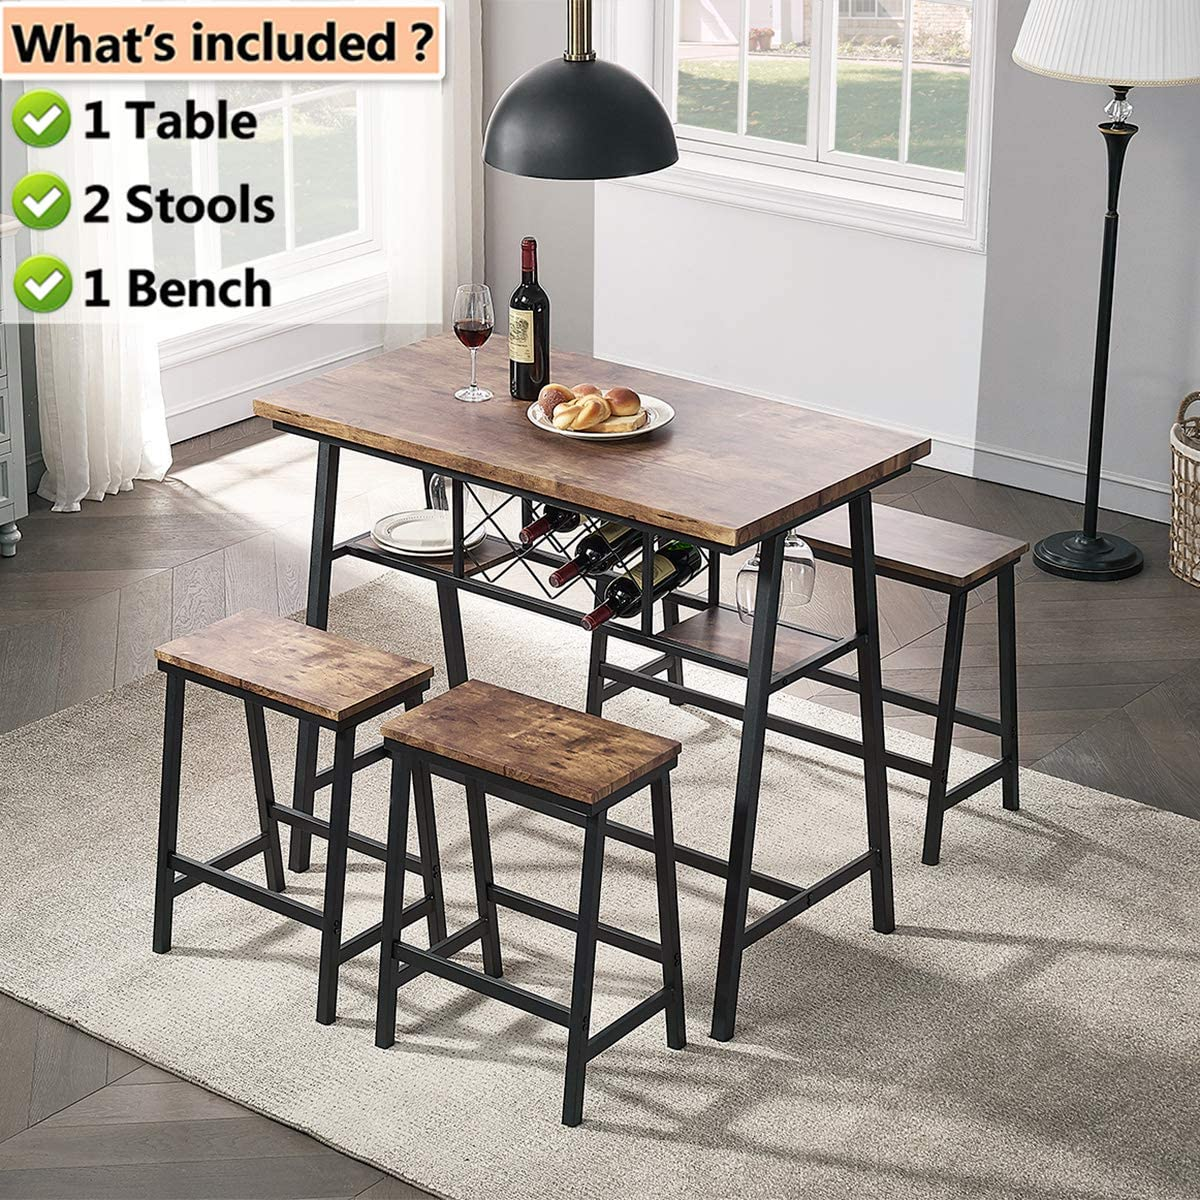 O&K FURNITURE 9 Piece Counter Height Dining Room Table Set, Bar Table with  One Bench and Two Stools, Industrial Table with Wine Rack for Kitchen ...